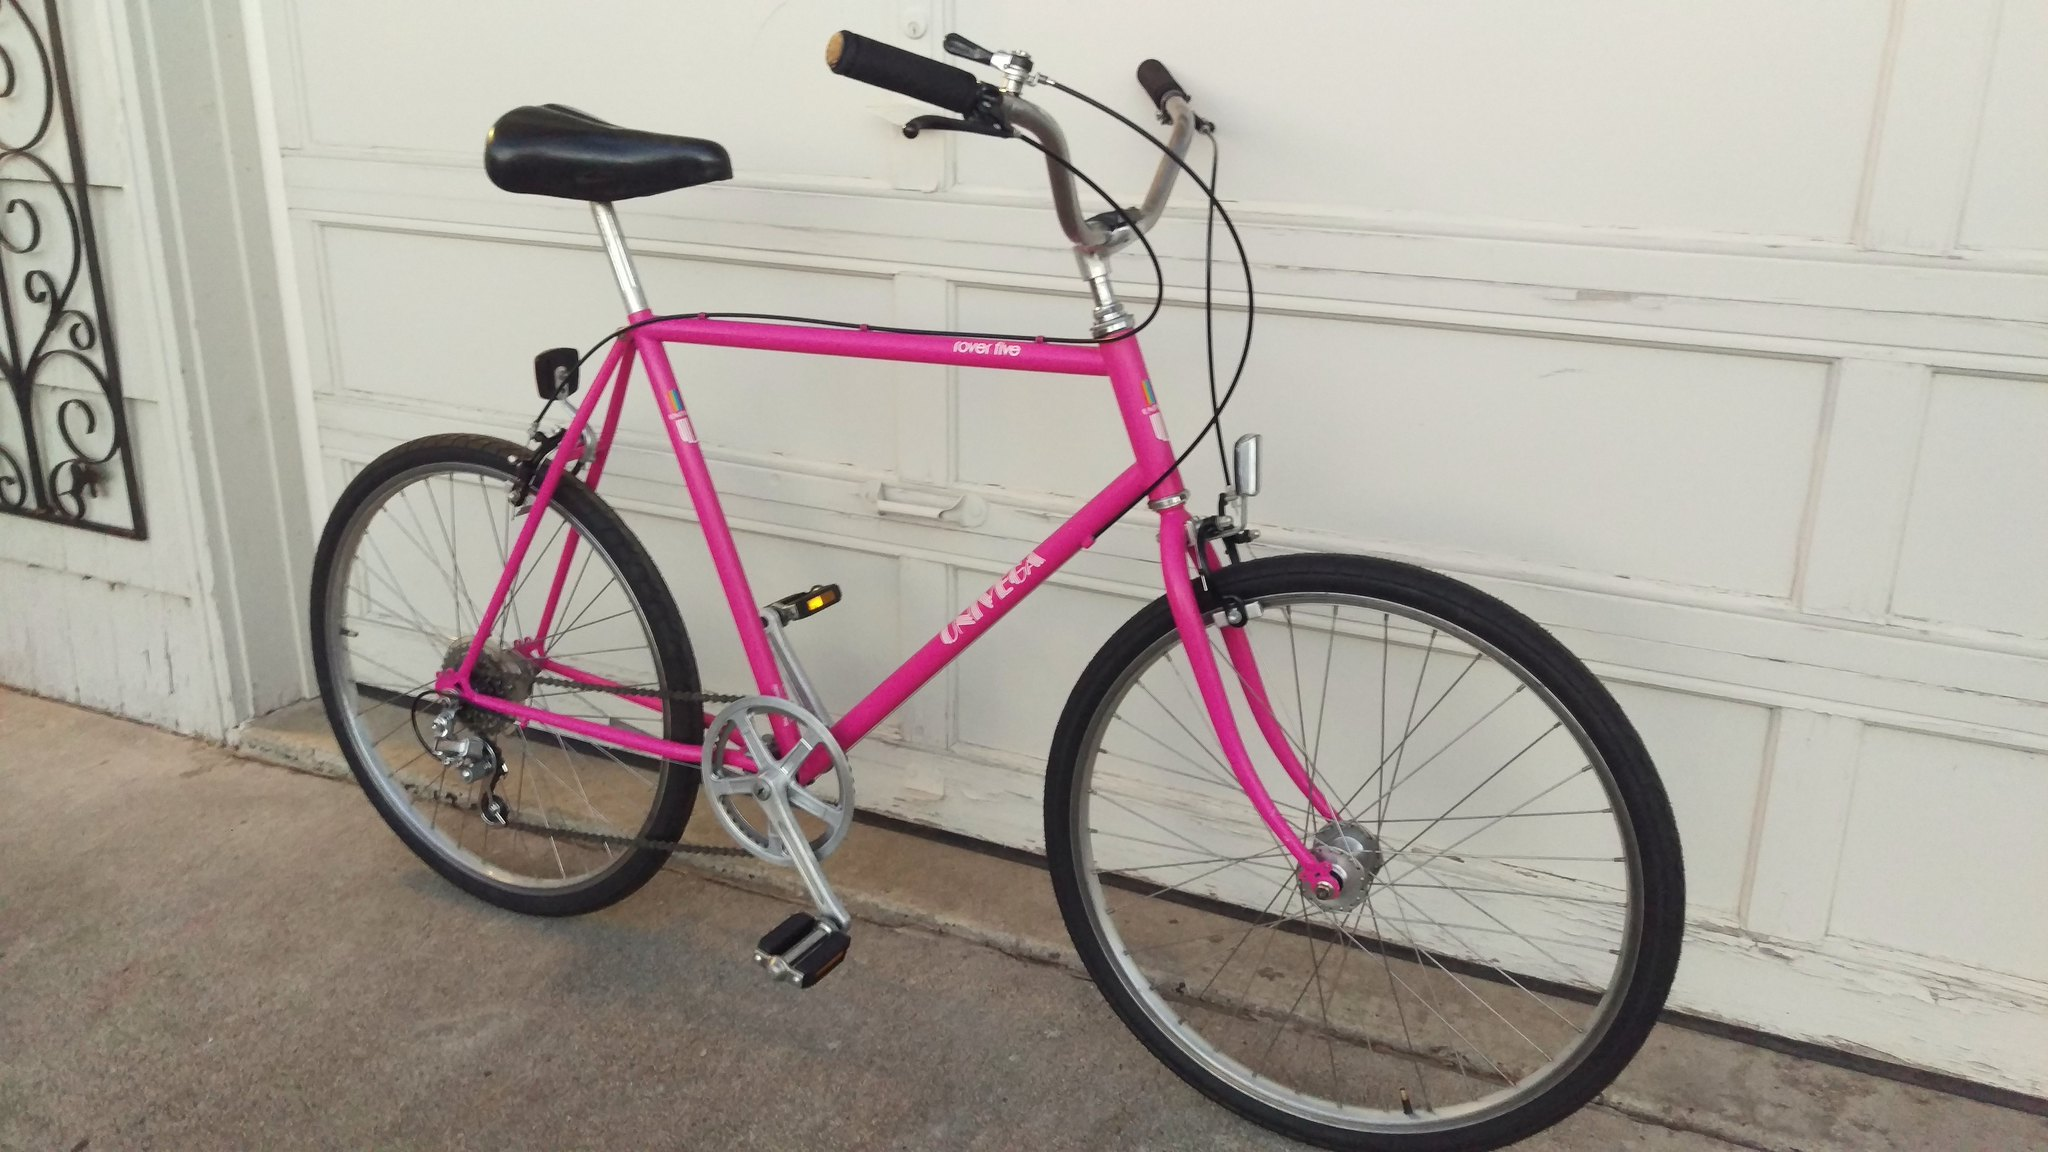 353bd095232 A pink bike thats half early MTB geometry and half beach cruiser which fits  me?!? No question, had to have it.